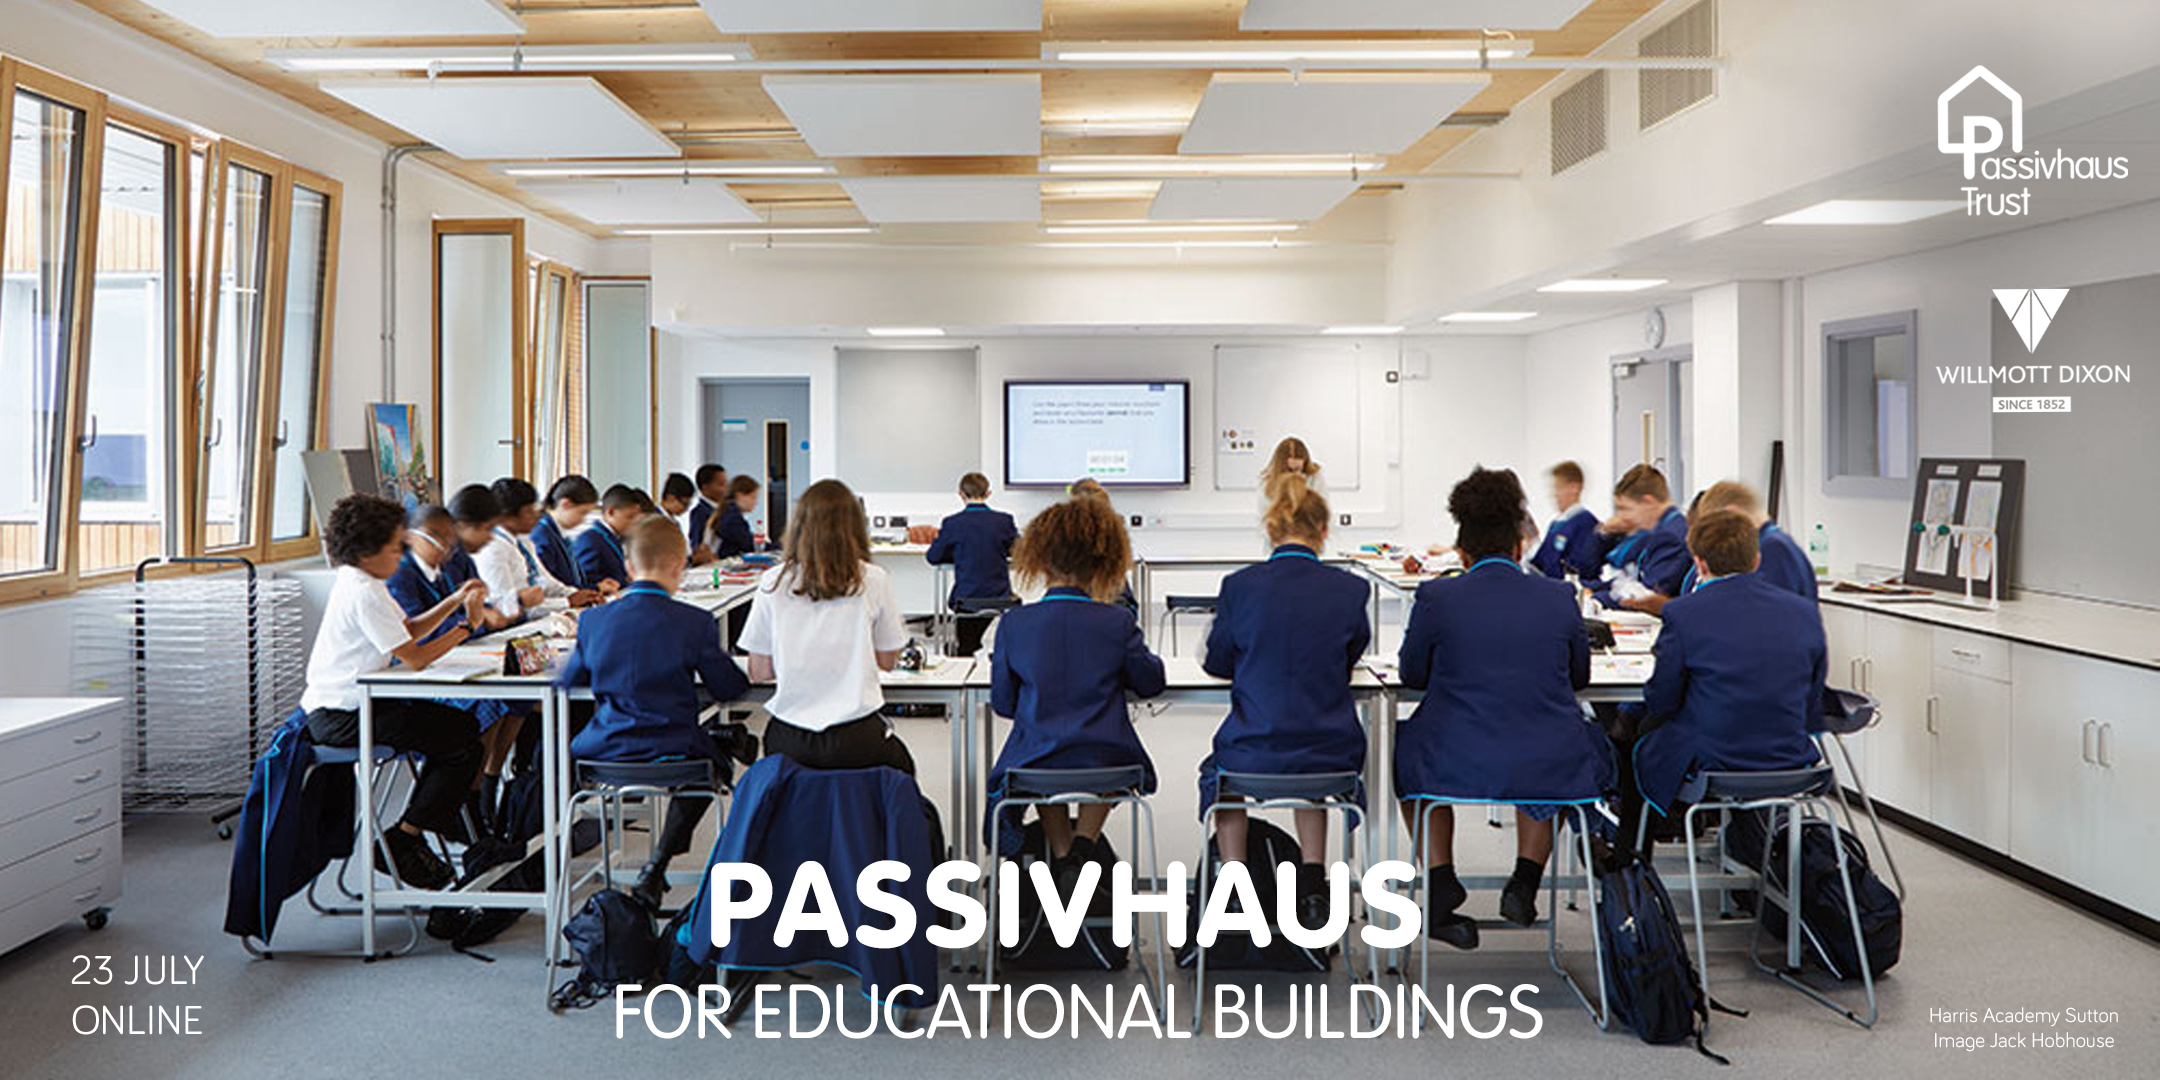 Passivhaus for educational buildings, official launch - 23 July